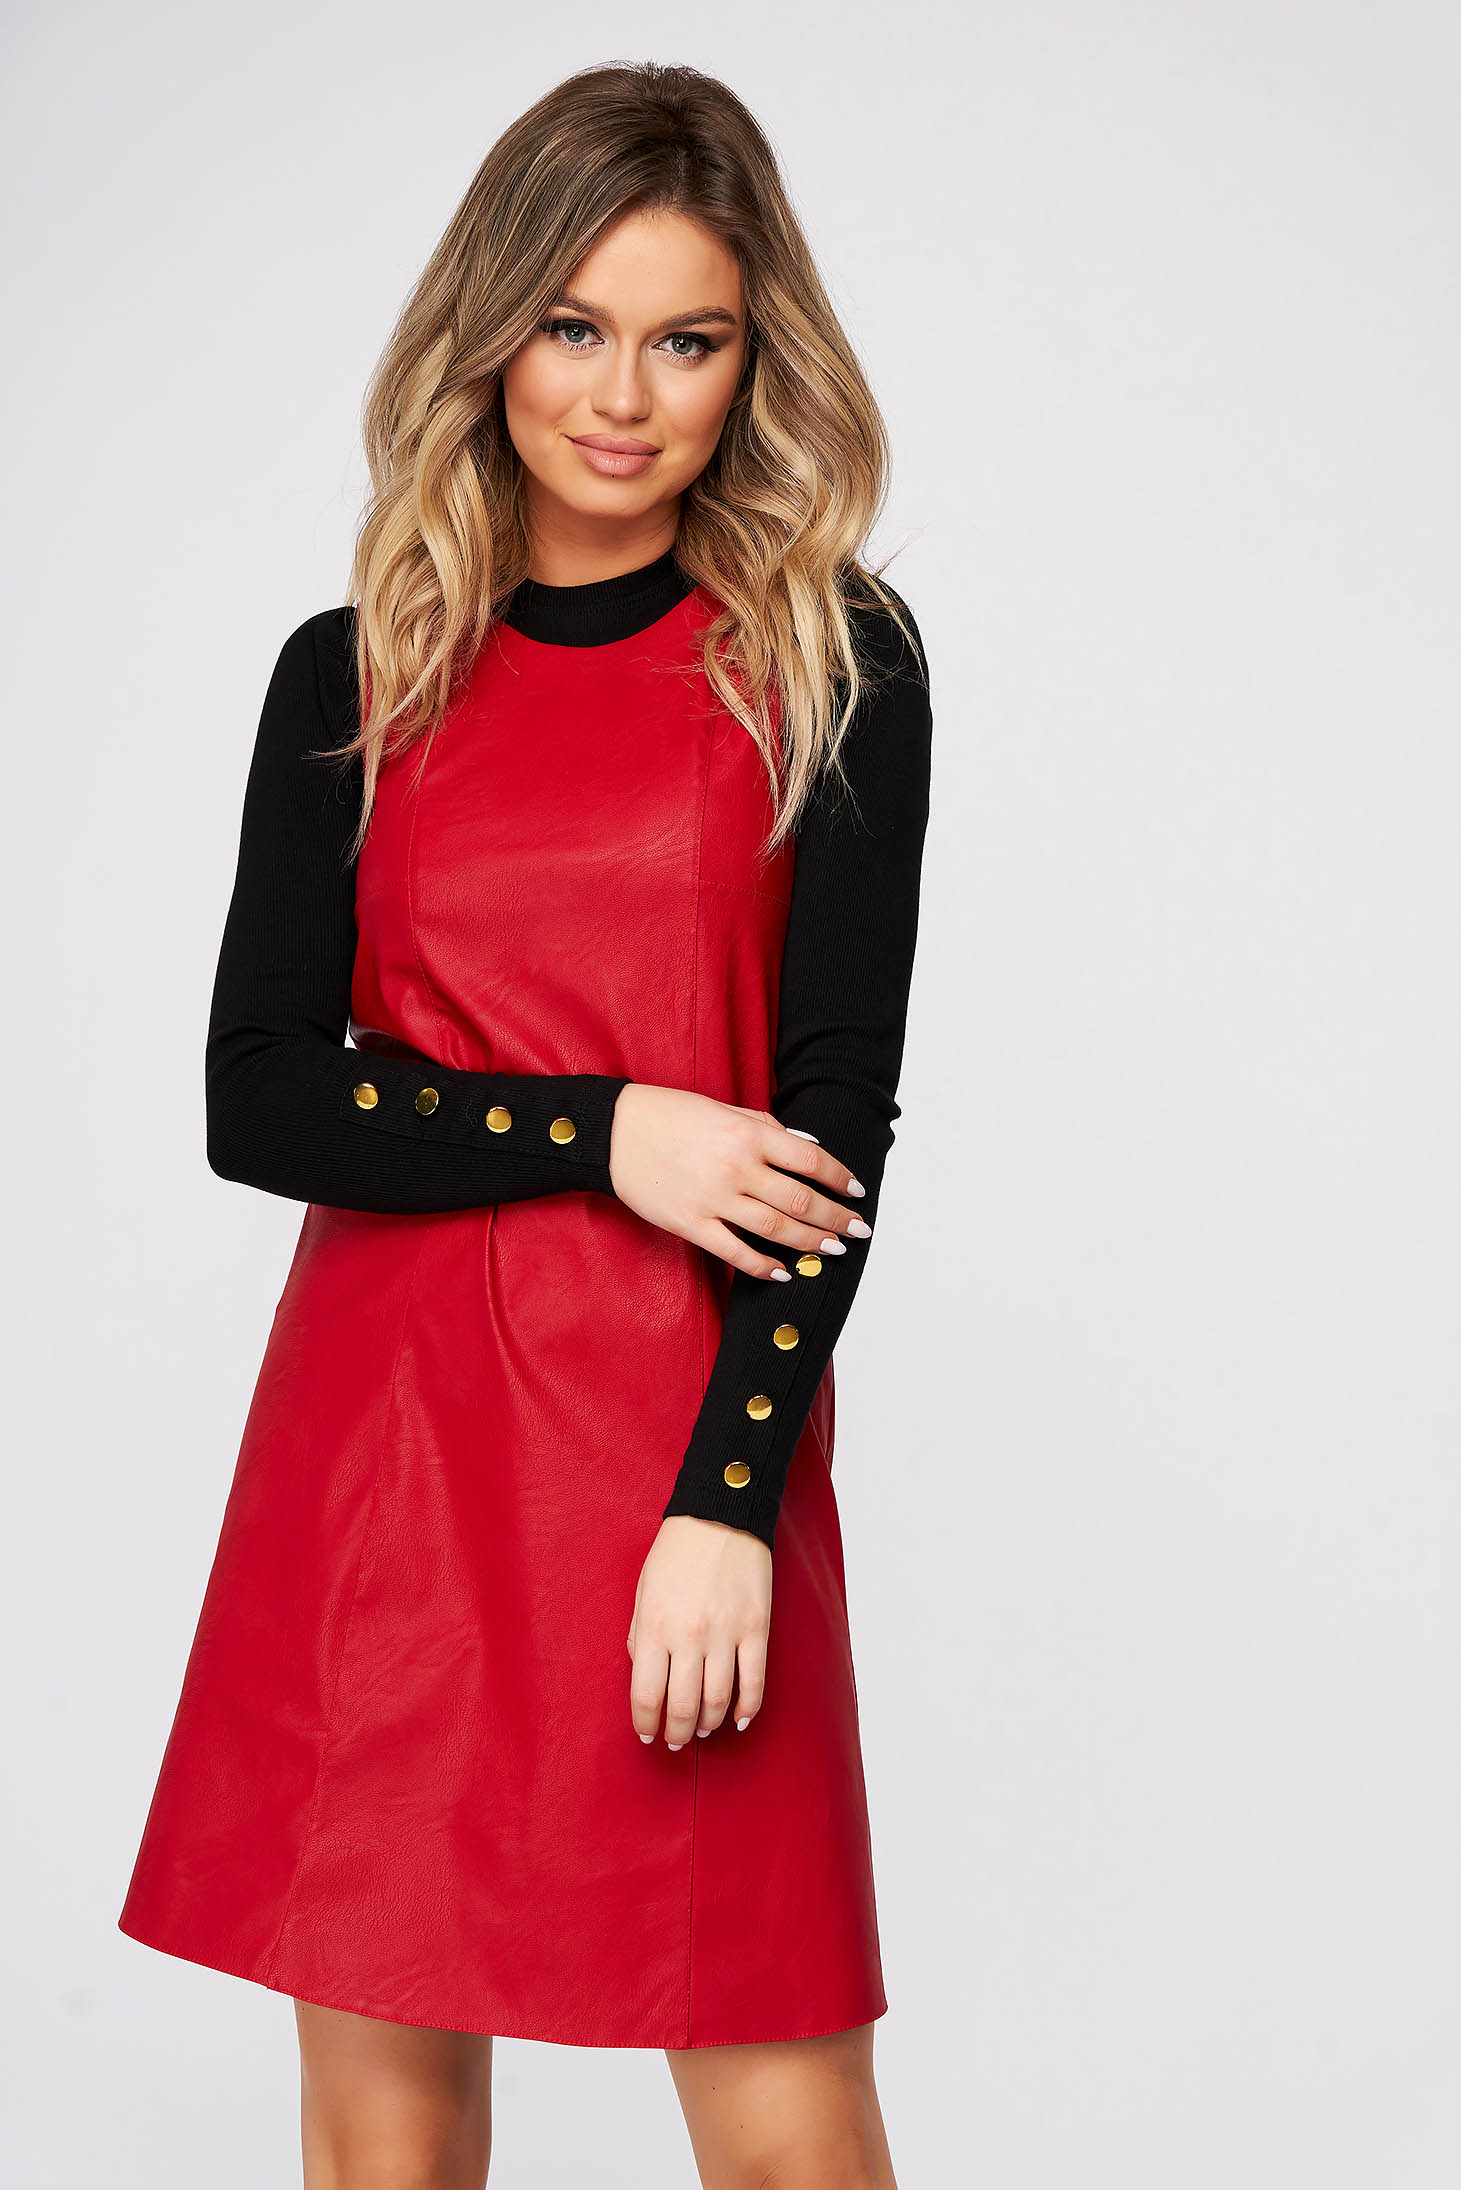 StarShinerS red dress daily short cut from ecological leather sleeveless